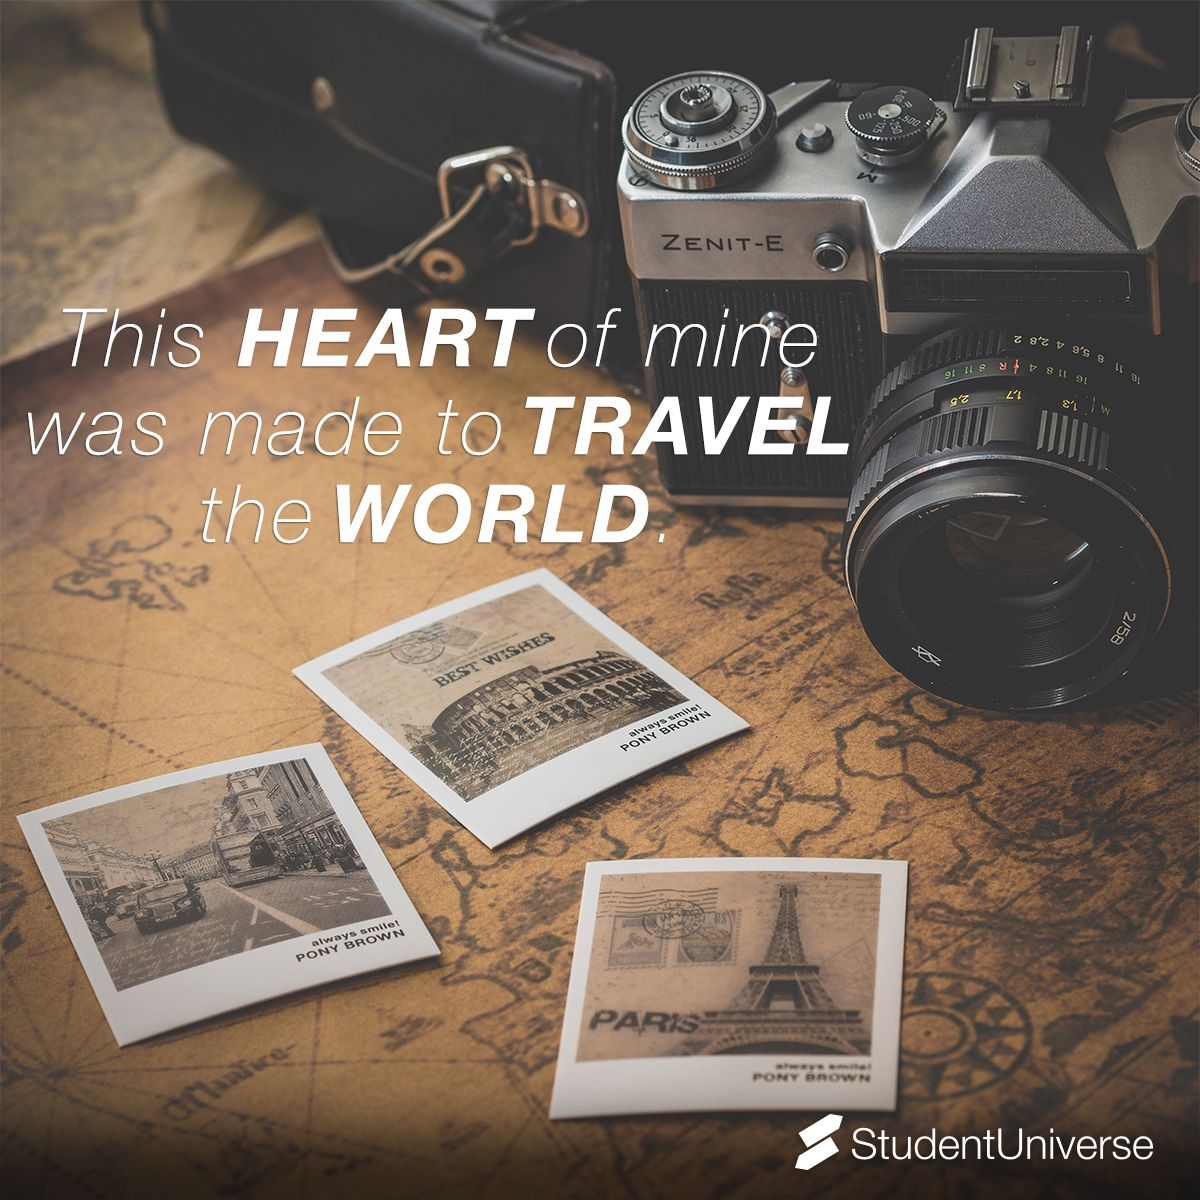 This heart of mine was made to travel the world. Student